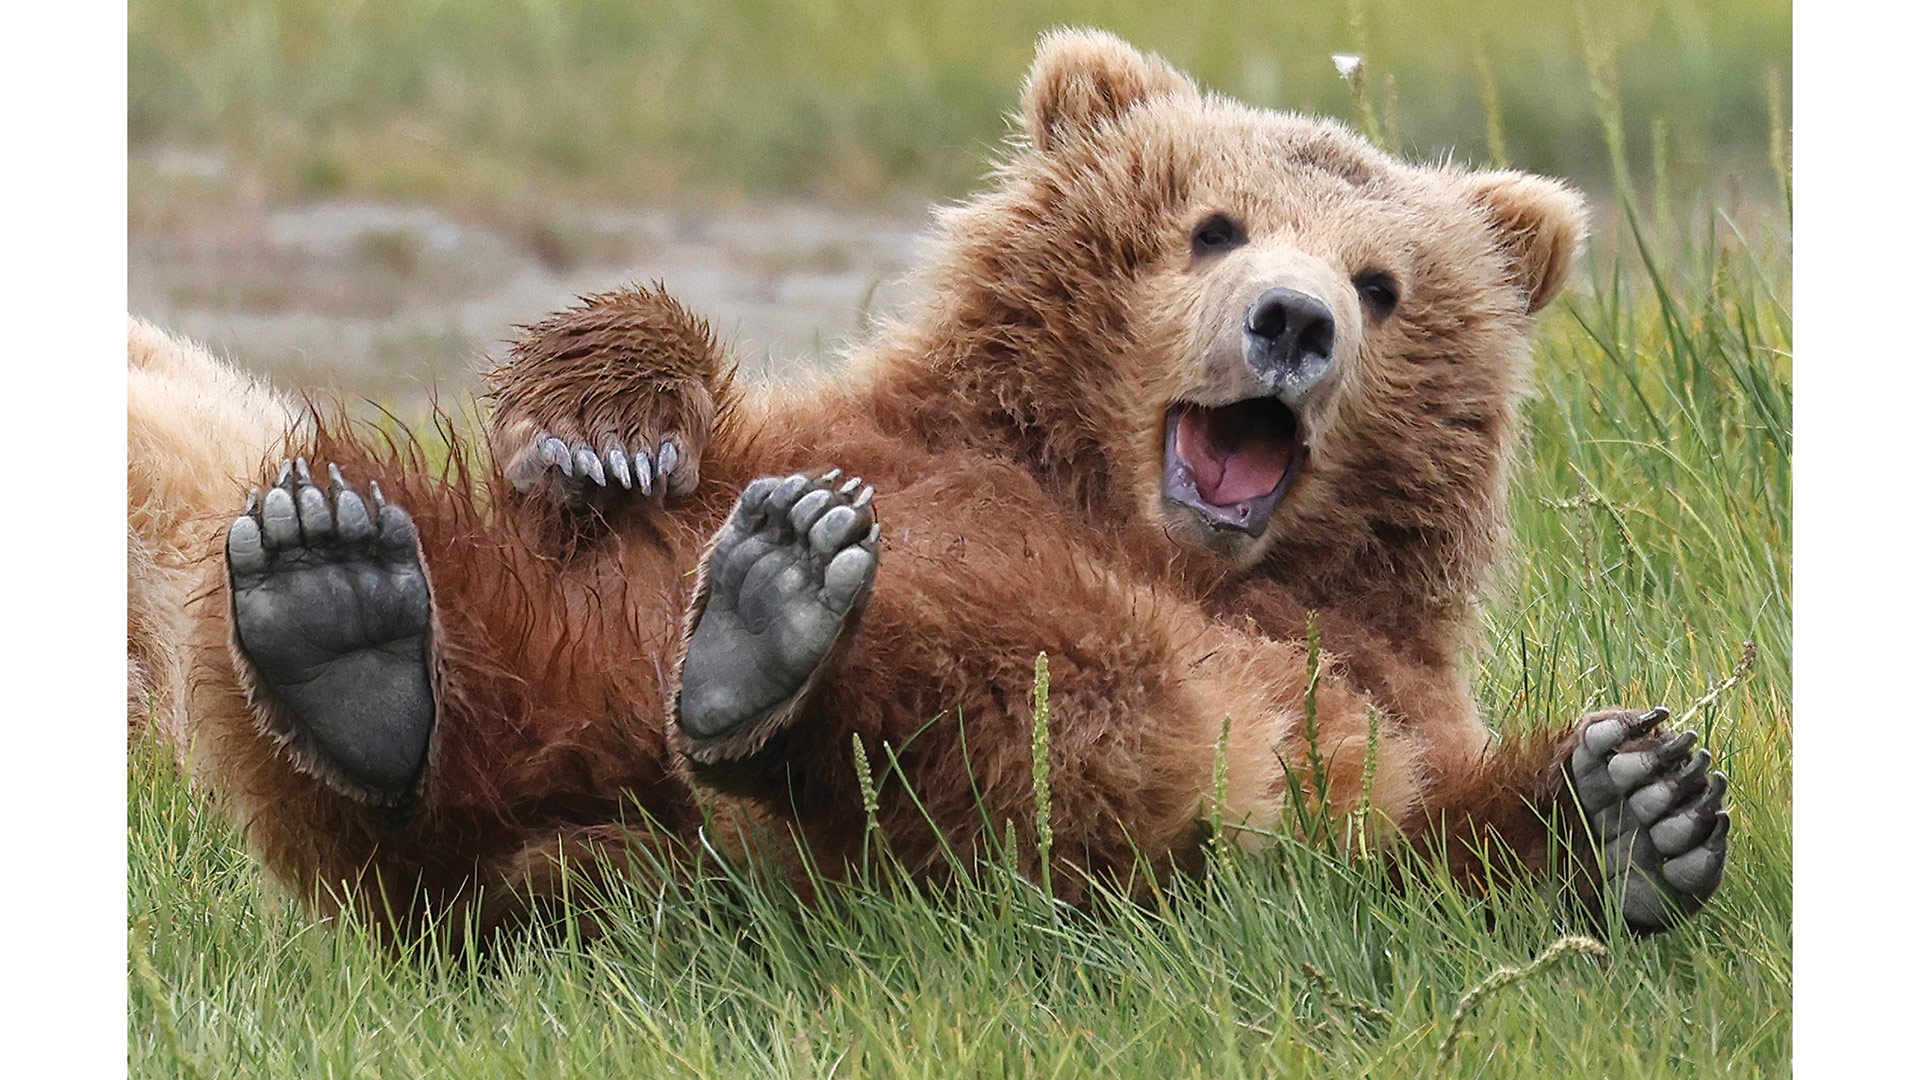 Dr. Louis DeCaro photographed this bear while visiting Alaska. The image is one of many he has sold to help families pay for needed orthotics for their children.